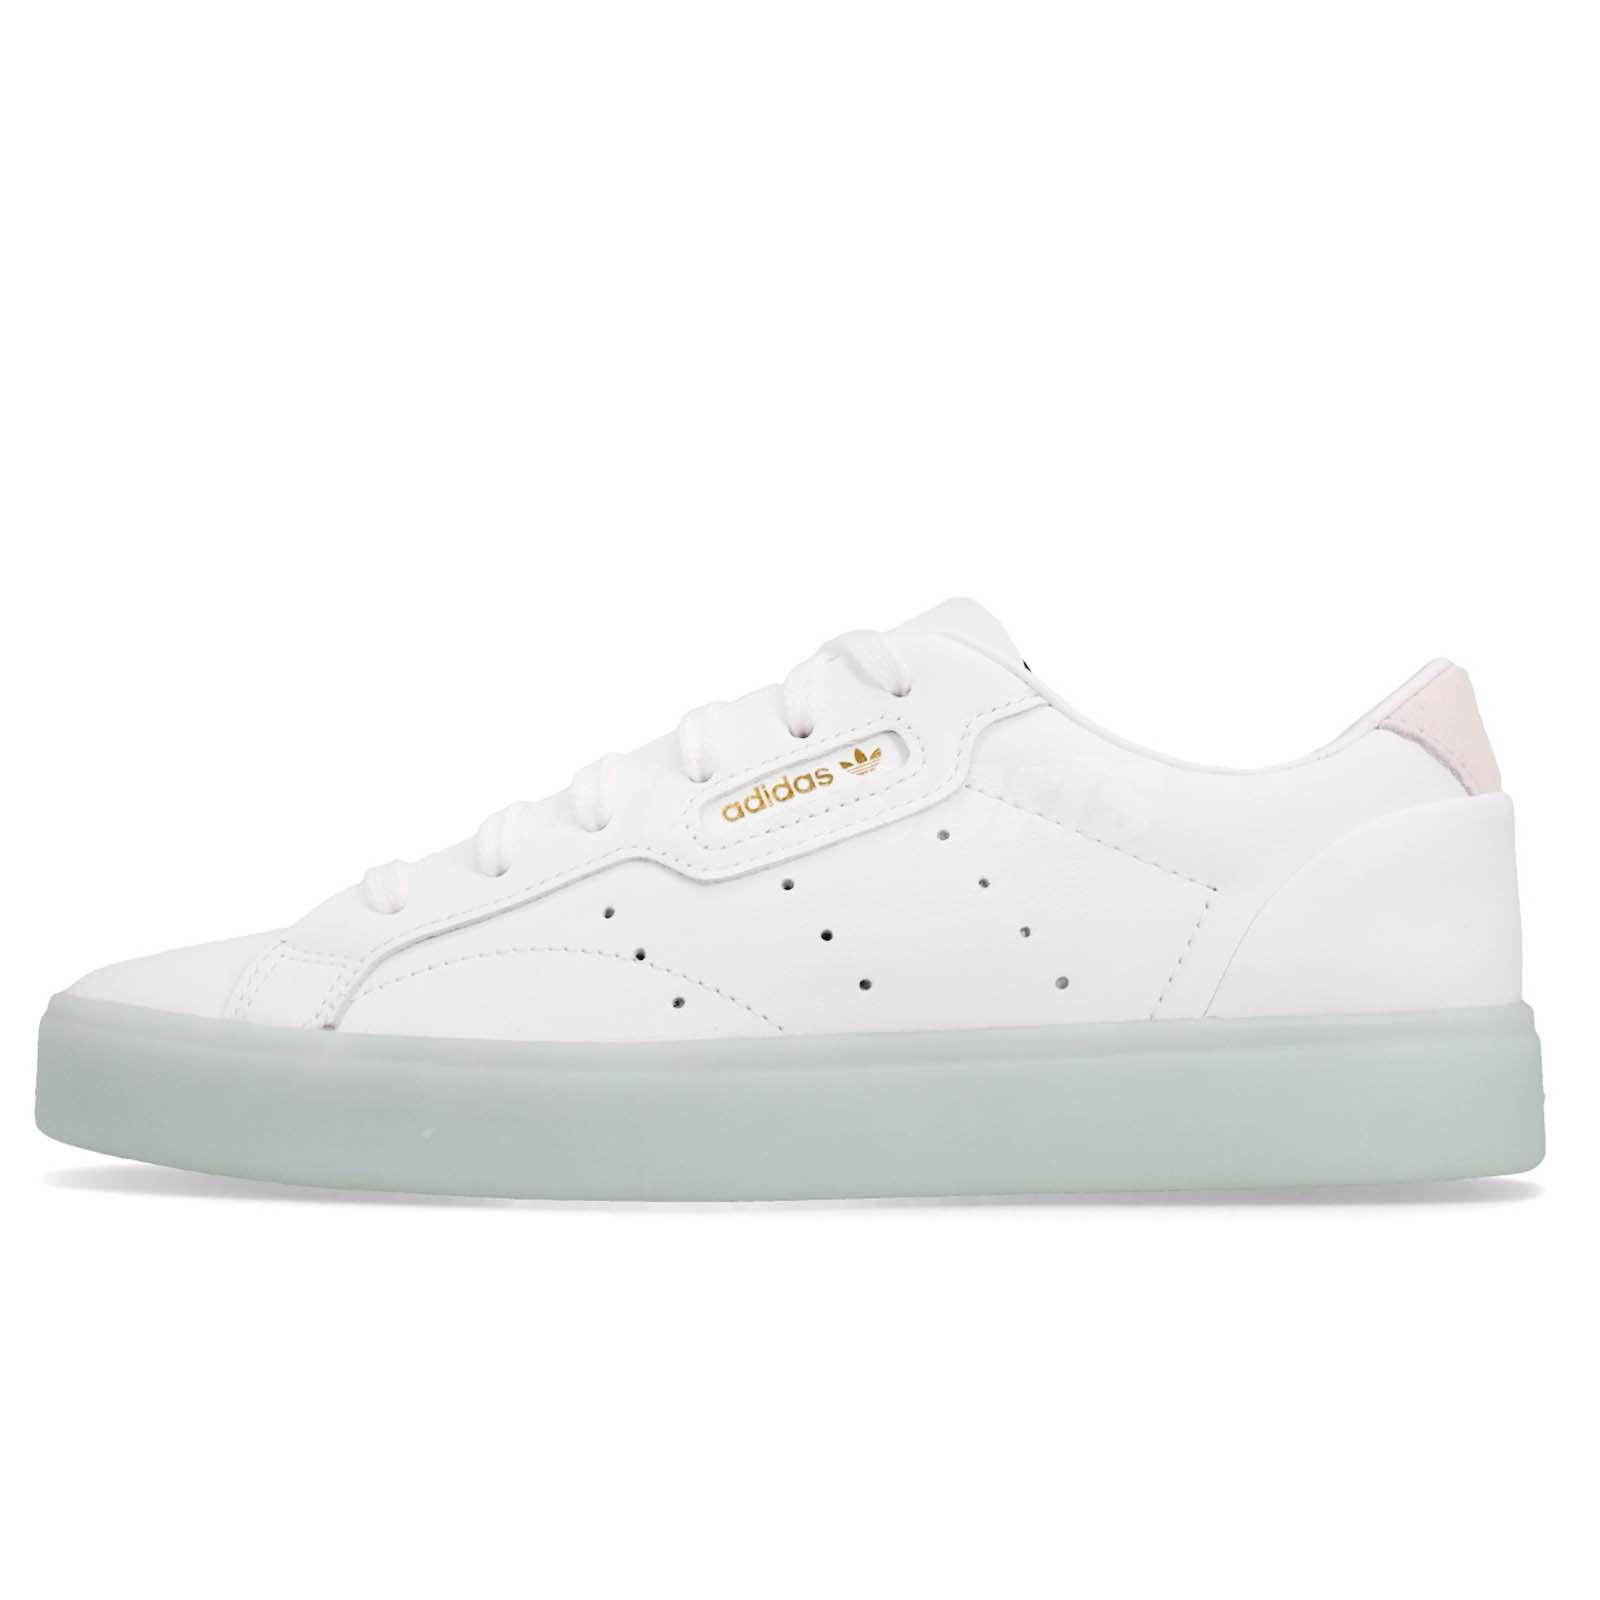 c8a7cce7 adidas Originals SLEEK W White Ice Mint Women Casual Lifestyle Shoes G27342